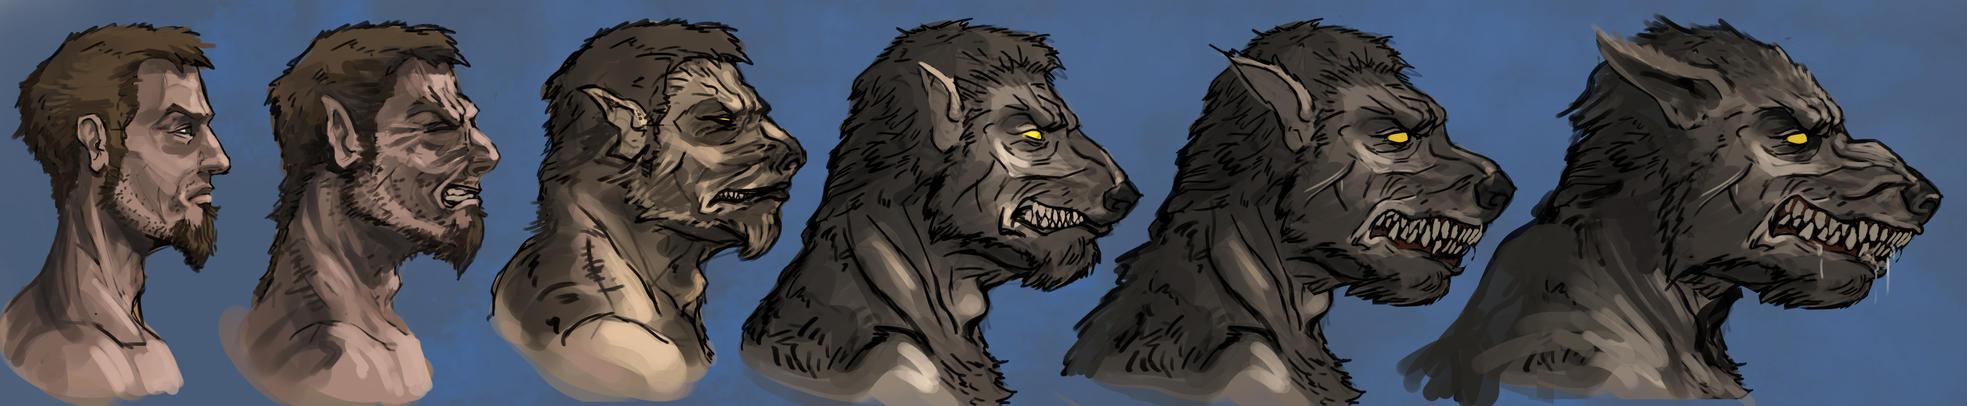 Werewolf transformation 2